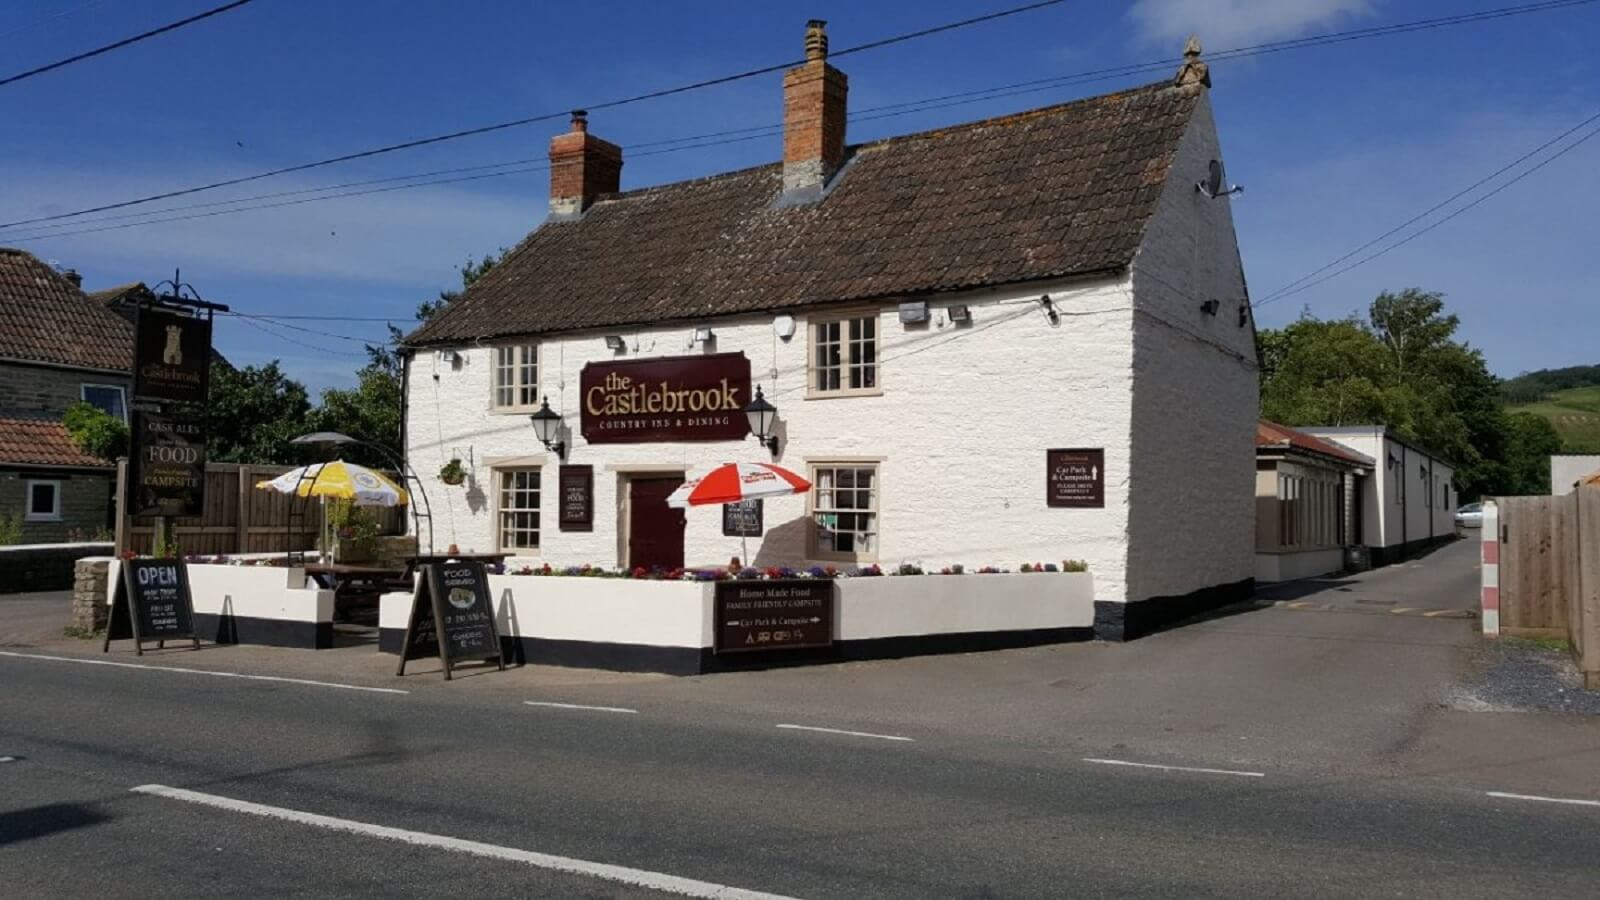 The Castlebrook Inn